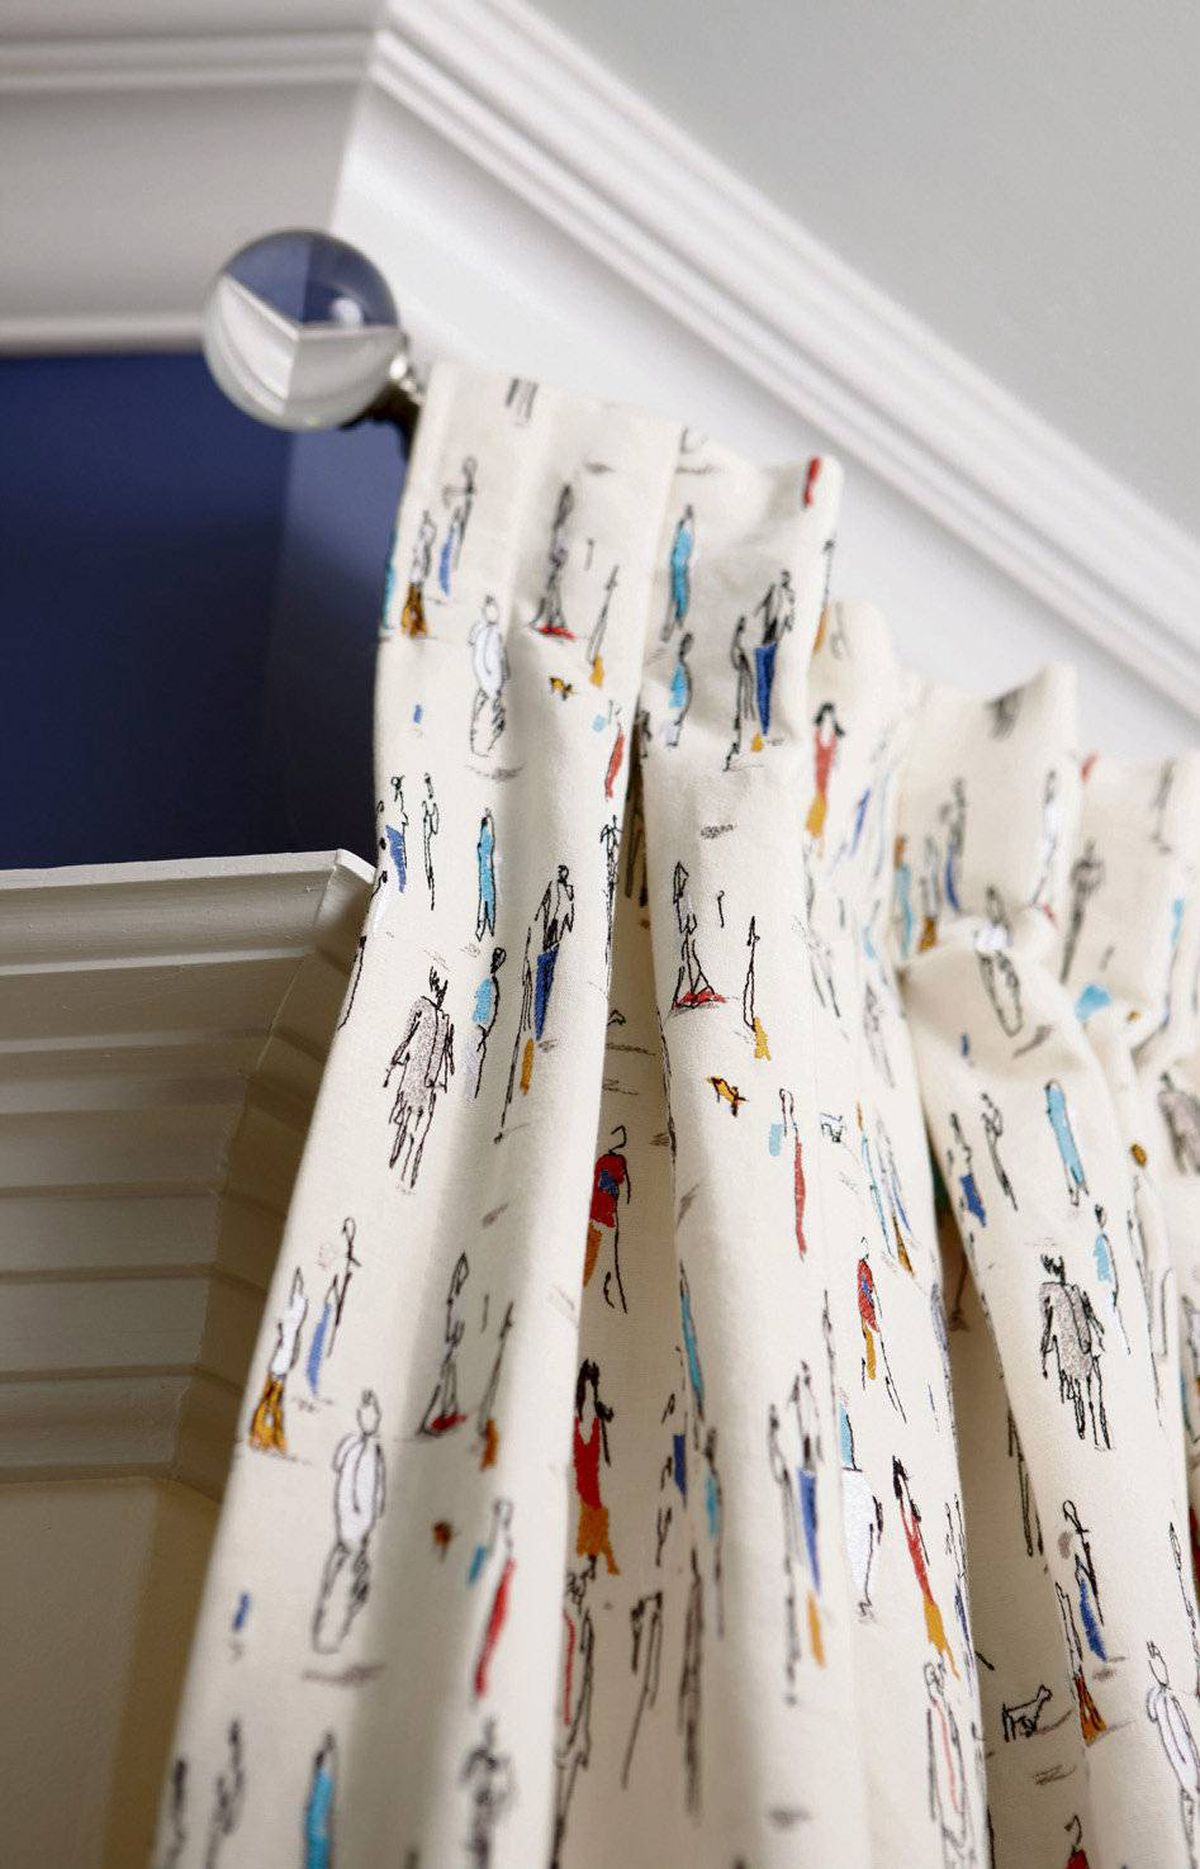 INJECT SOME SPIRIT Instead of playing it safe and serious, go for energetic, lighthearted drapery fabric. Here, embroidered street scenes of line-drawn people have an urban graffiti-style edge that appeals to the younger set and is well suited to a room that's supposed to encourage frivolity.